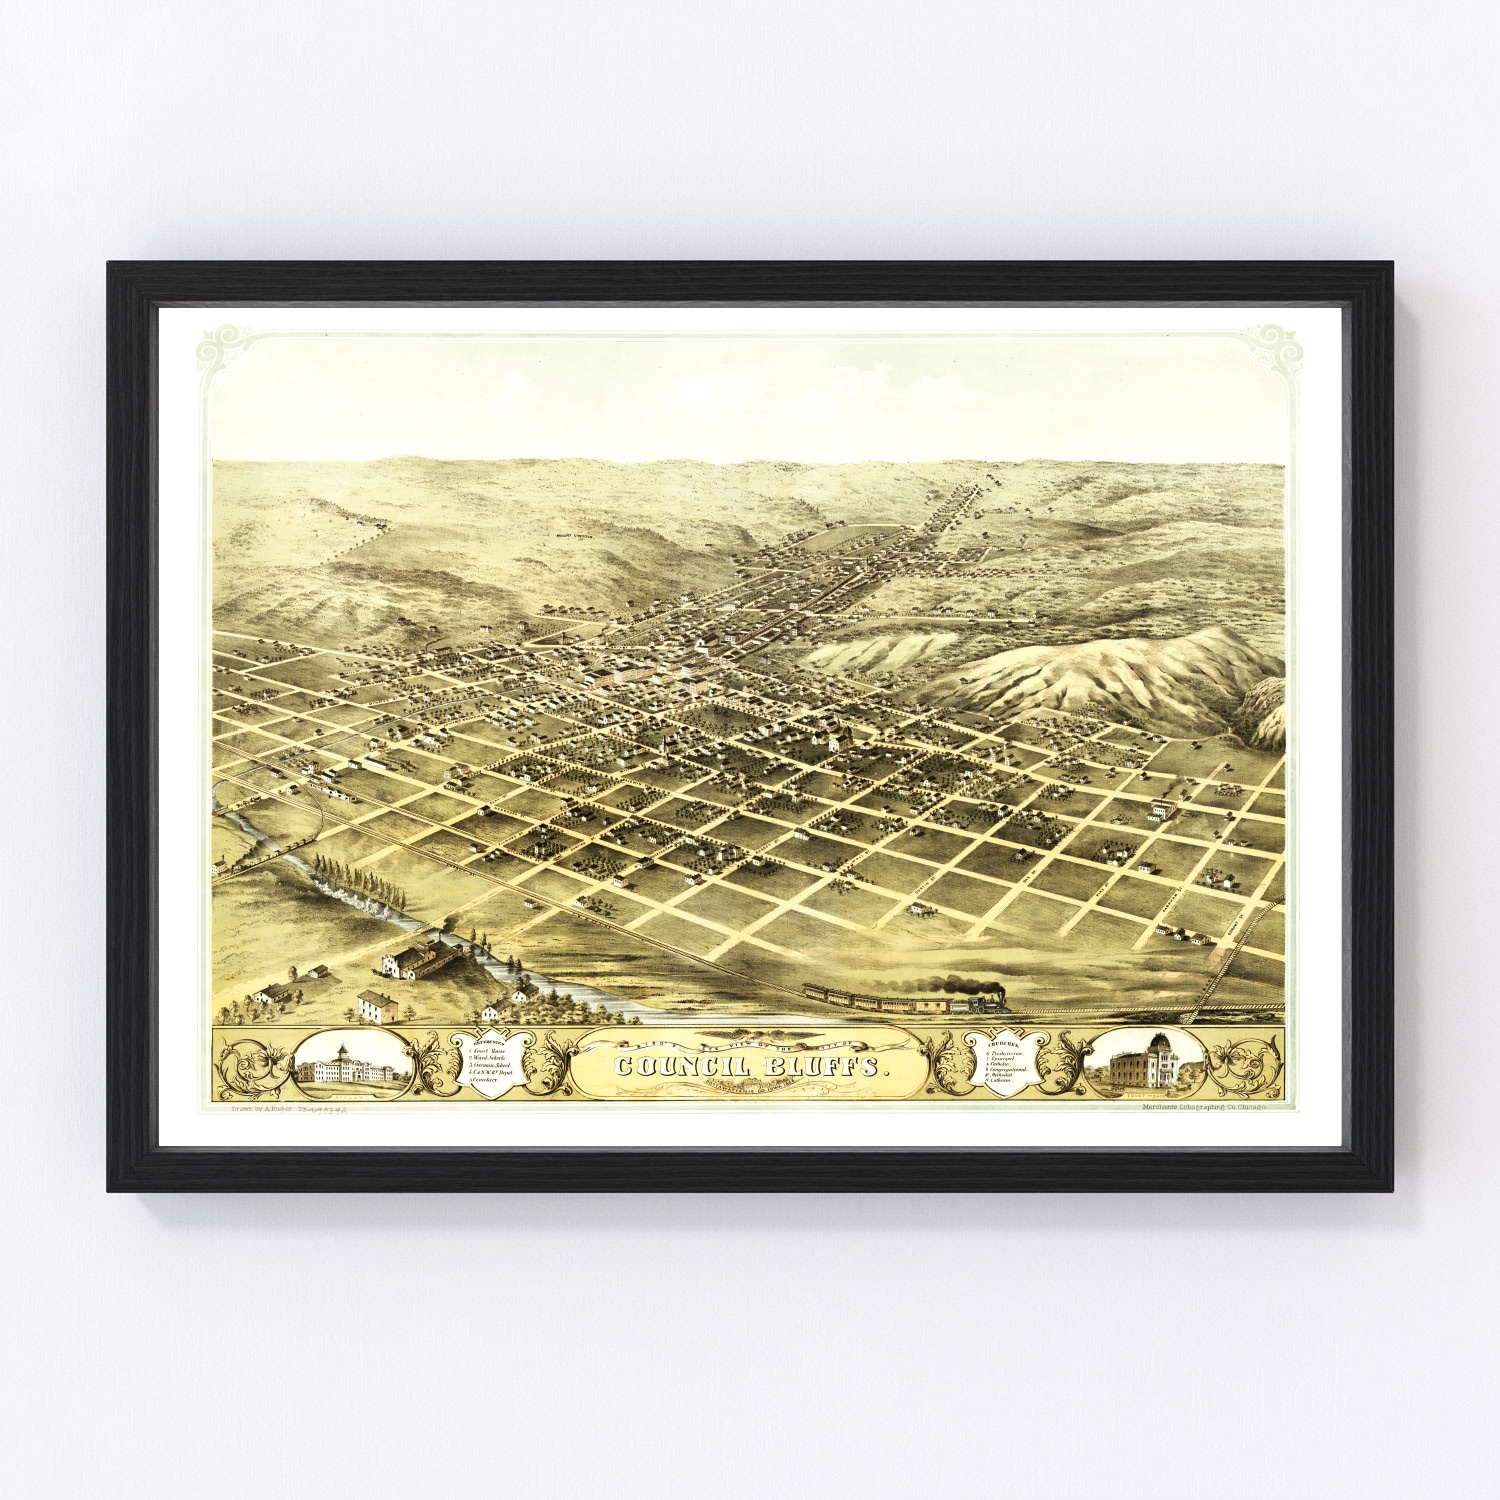 Vintage Map of Council Bluffs, Iowa 1868